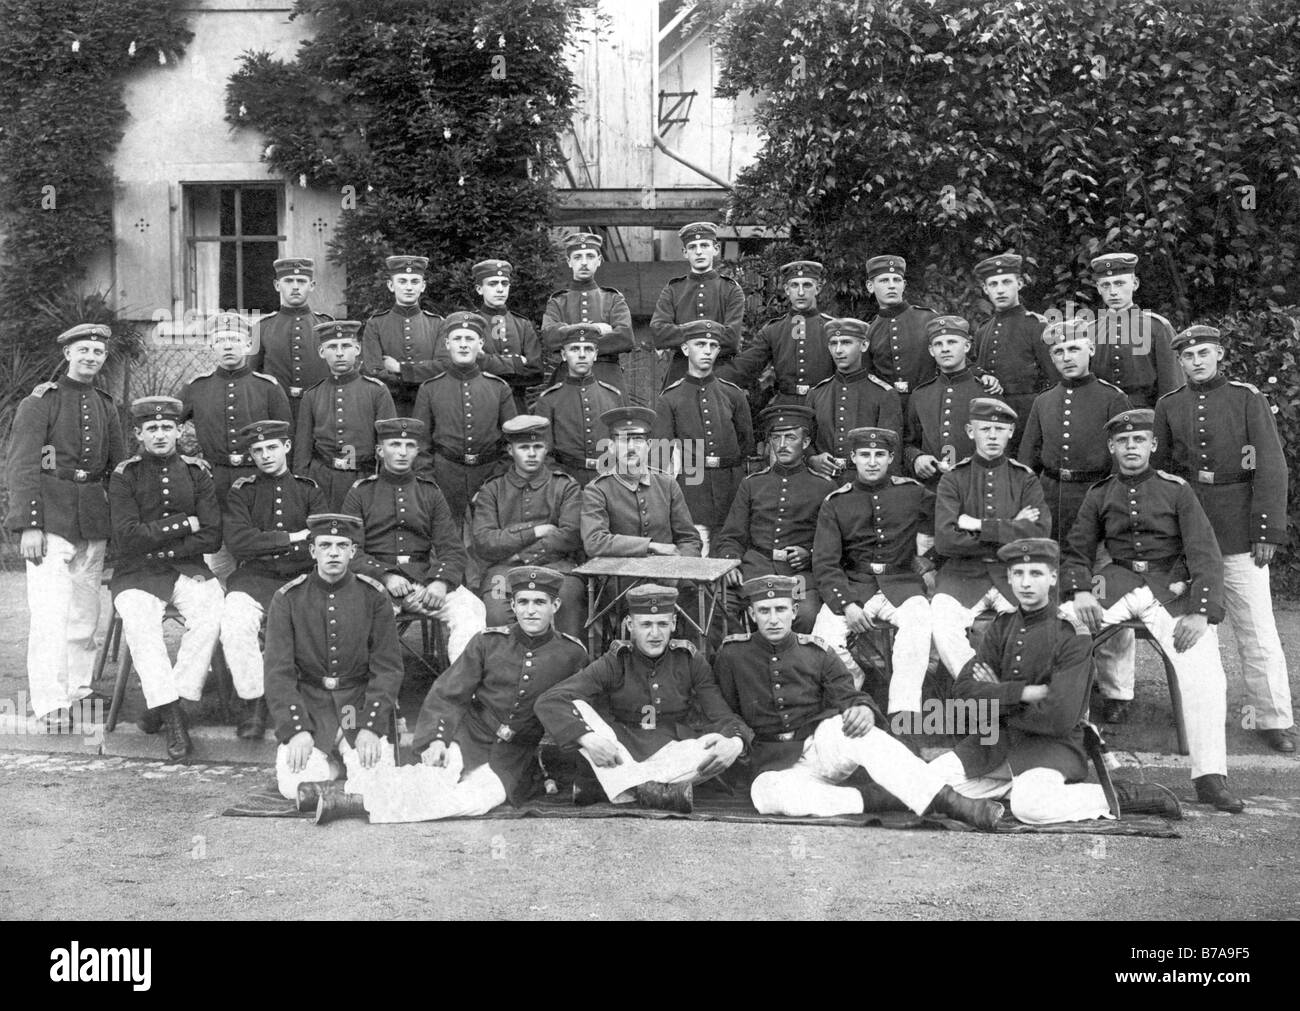 Historic photo, First World War, group photo of soldiers Stock Photo